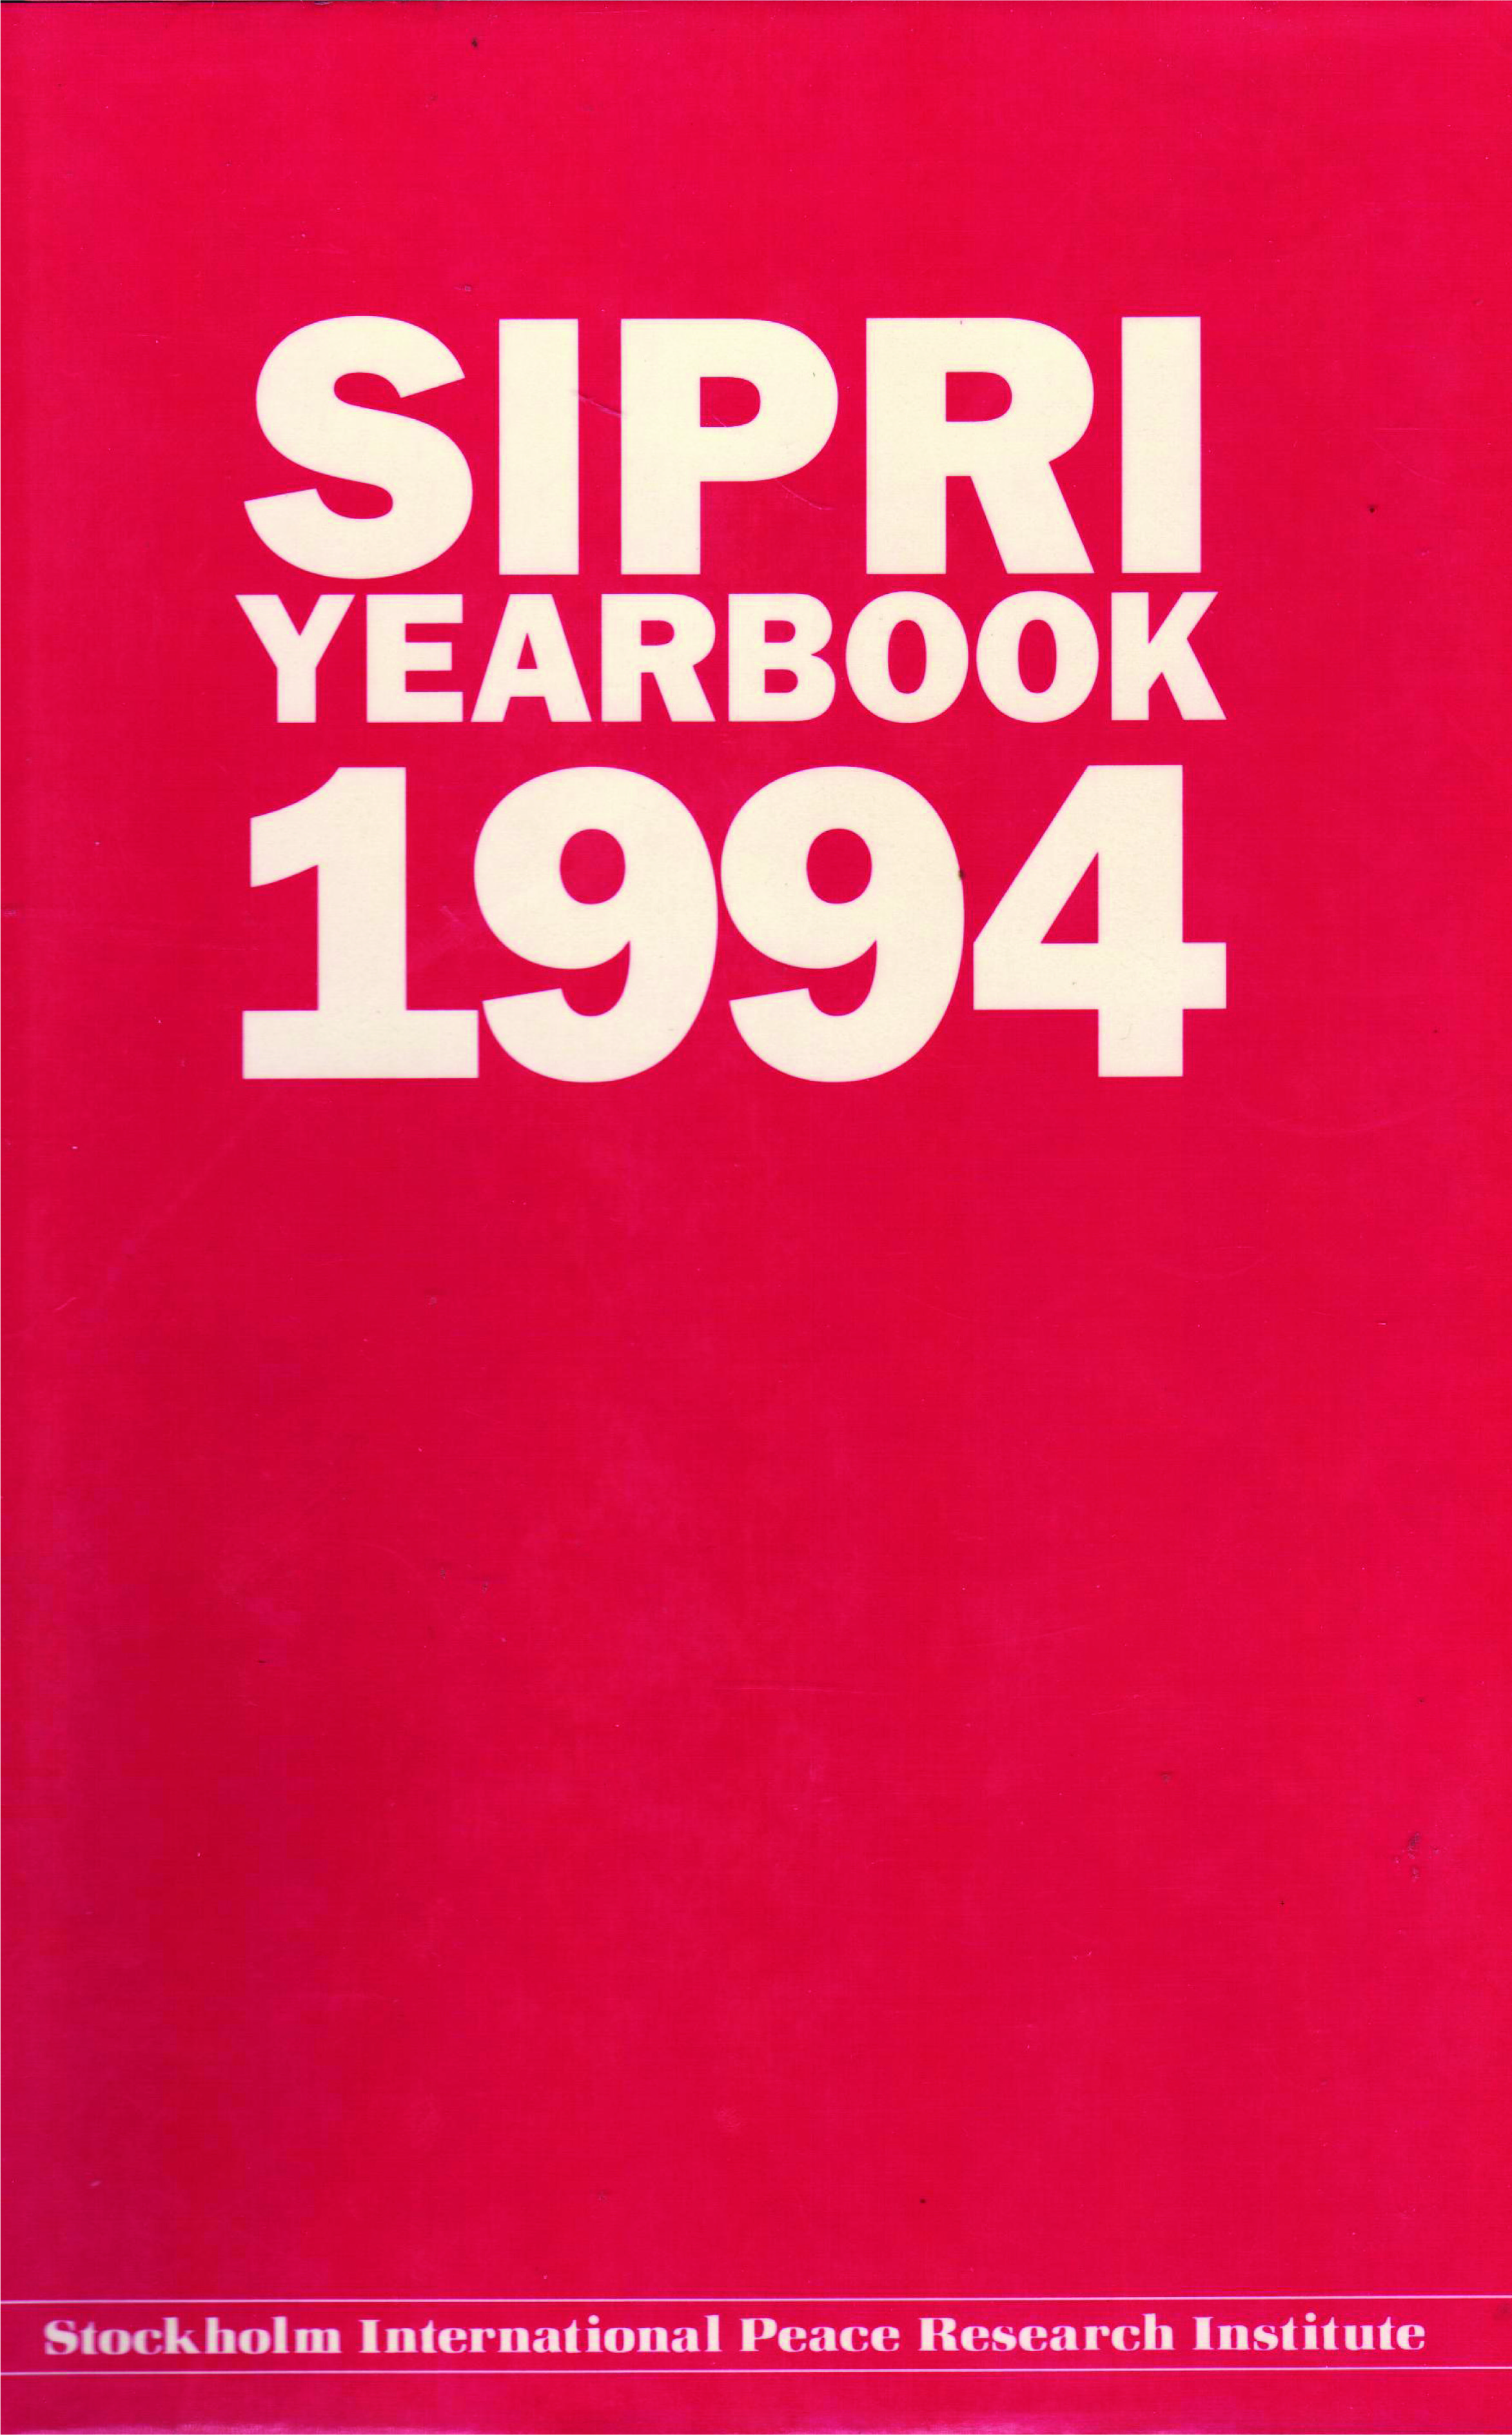 SIPRI yearbook 1994 cover